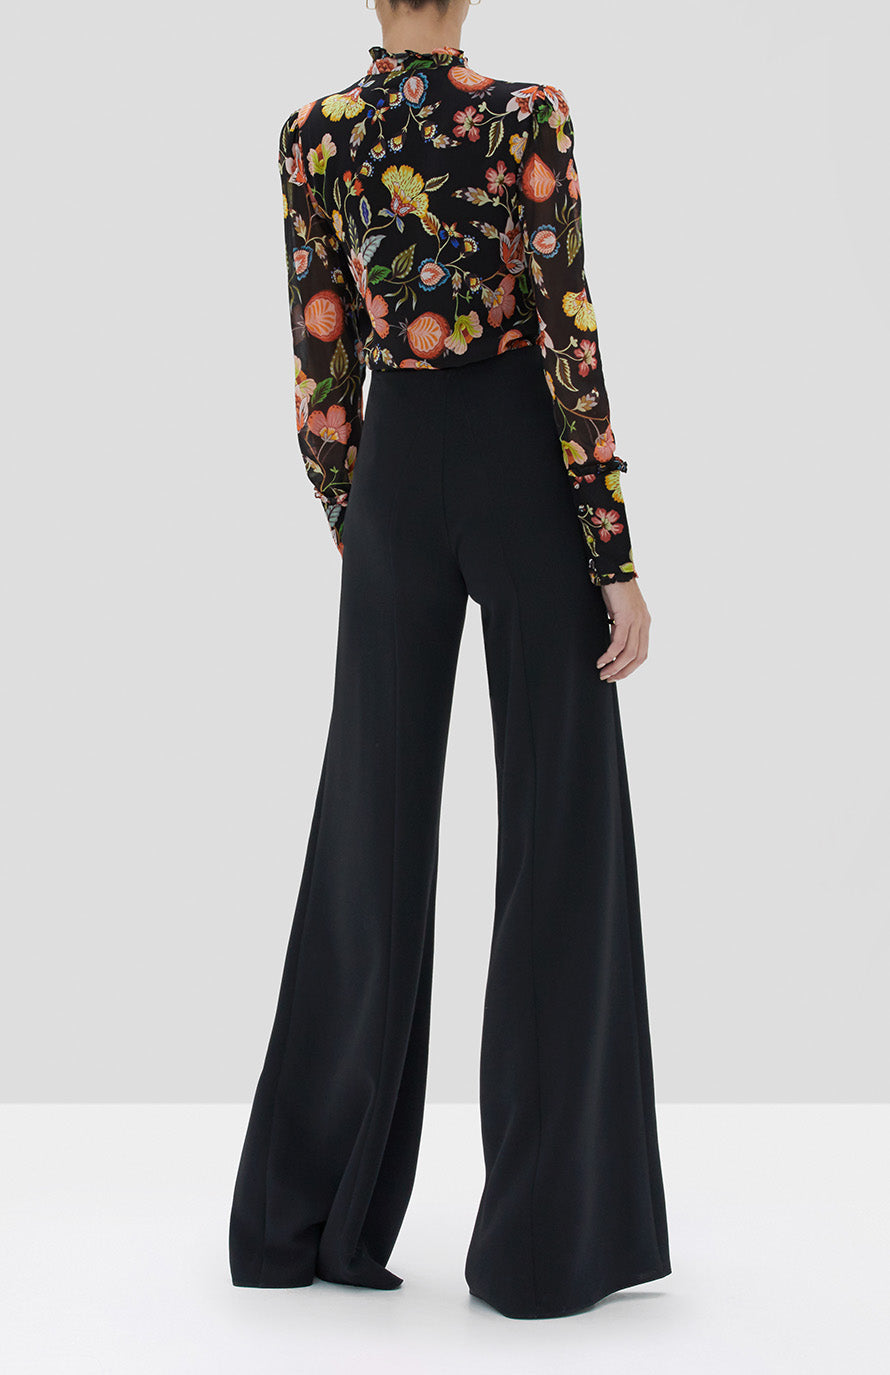 Alexis Elodie Top Black Nouveau and Irvine Pant Black from the Fall Winter 2019 Ready To Wear Collection - Rear View